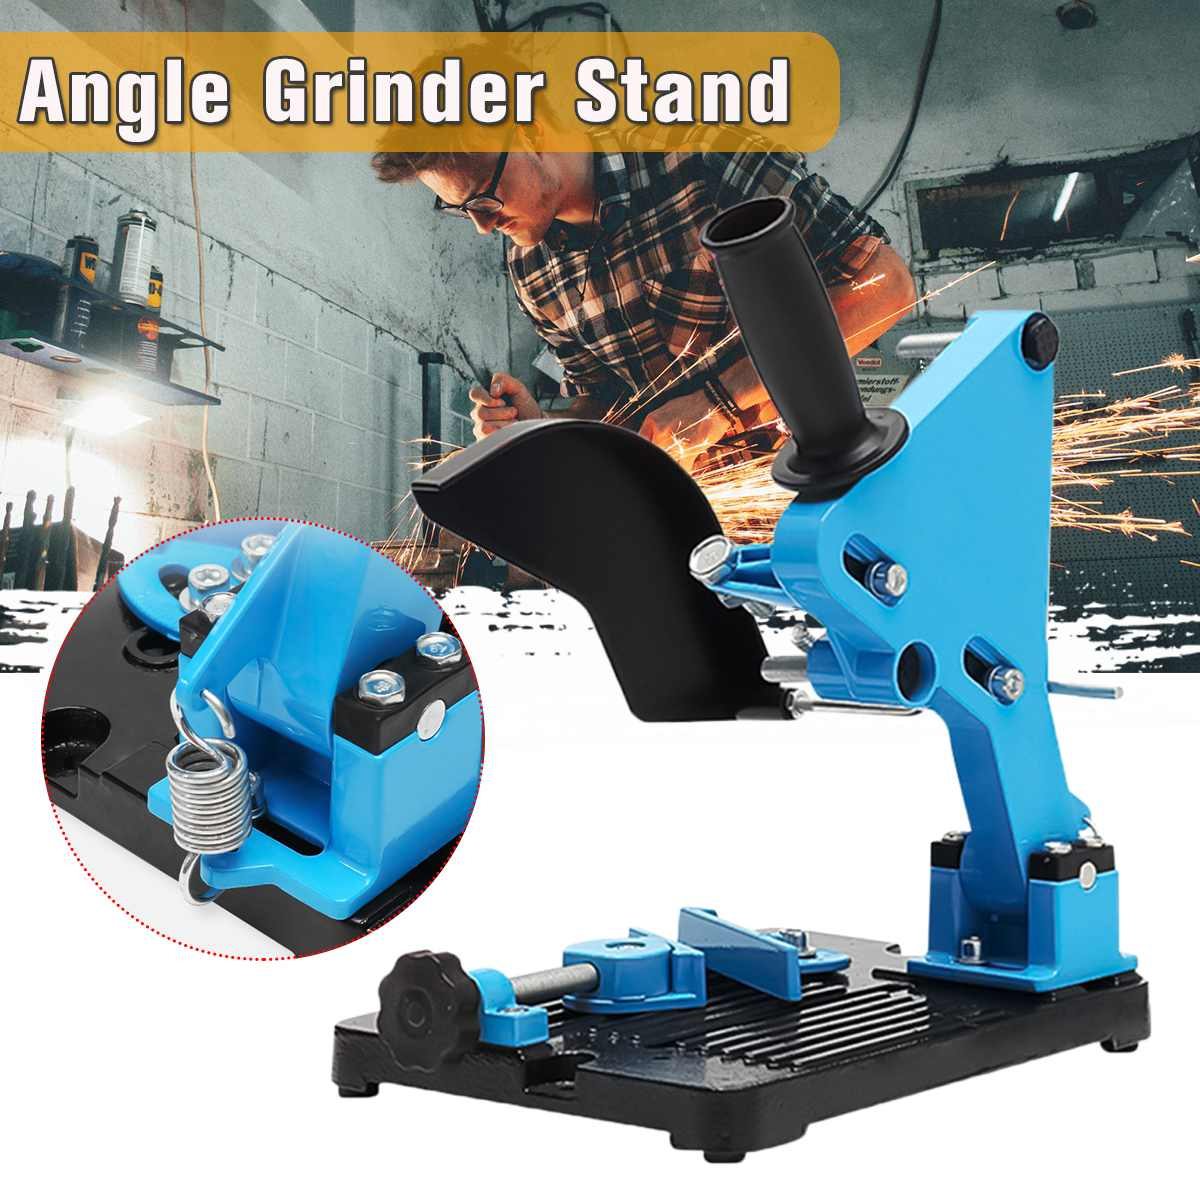 For 100-125 Cutter Angle Grinder Wood Power Tool Accessory Angle Grinder Stand Iron Base Angle Grinder Bracket Holder Support